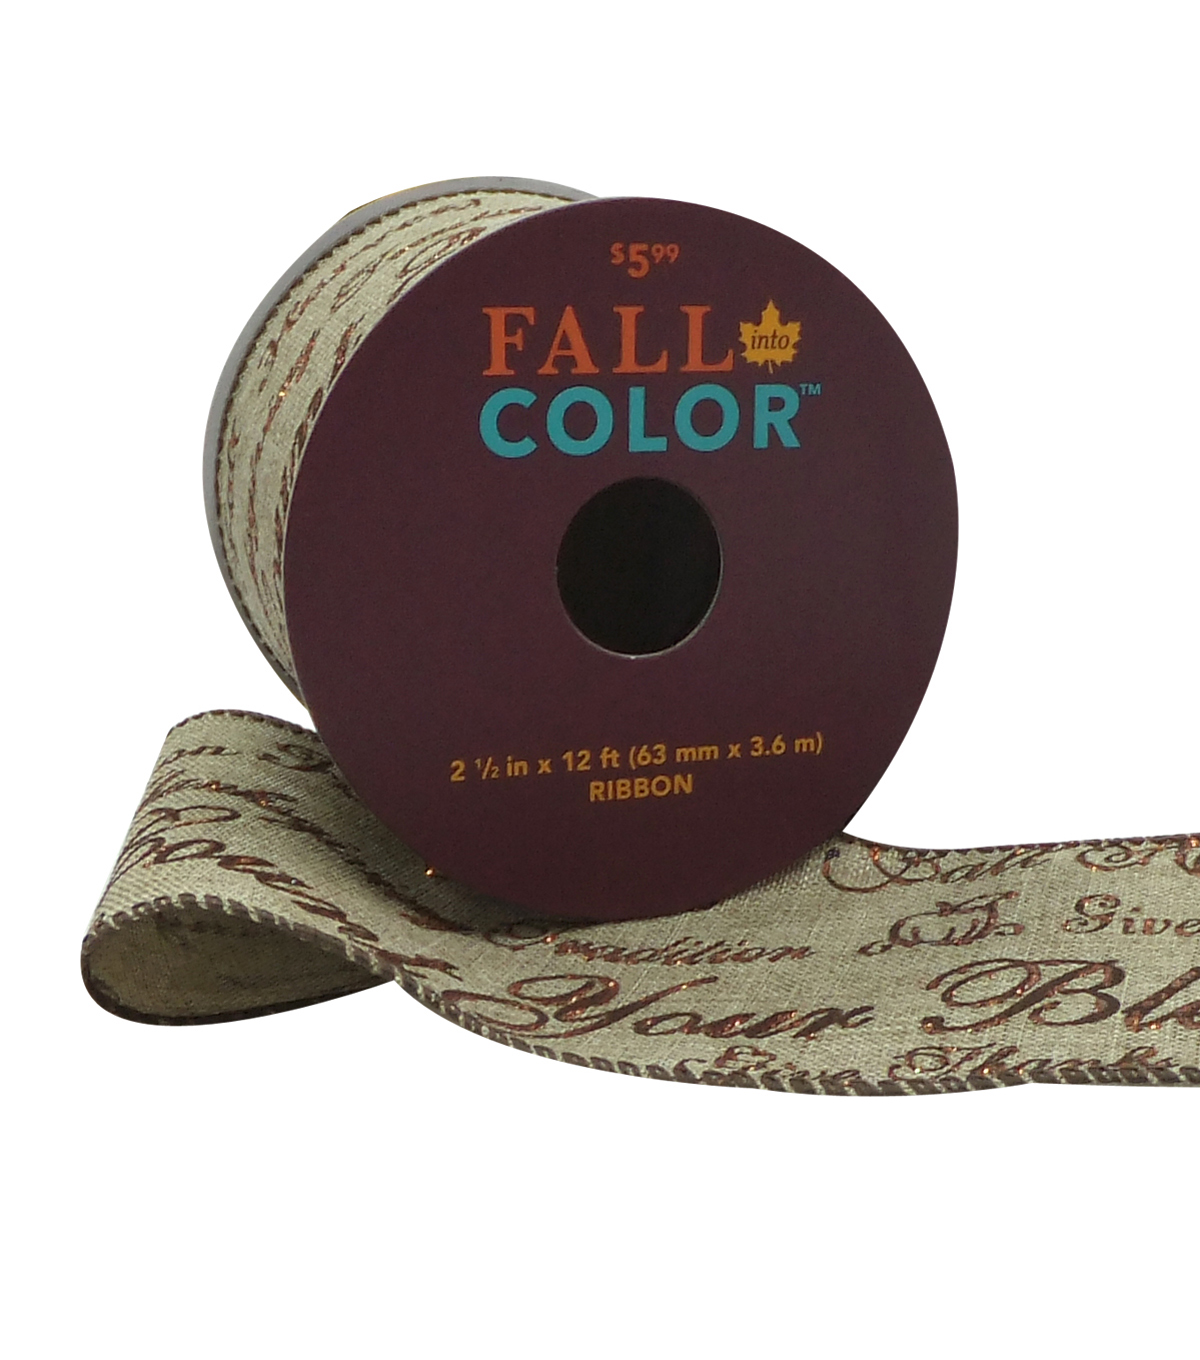 Fall Into Color Ribbon 2.5''x12'-Count Your Blessings on Natural